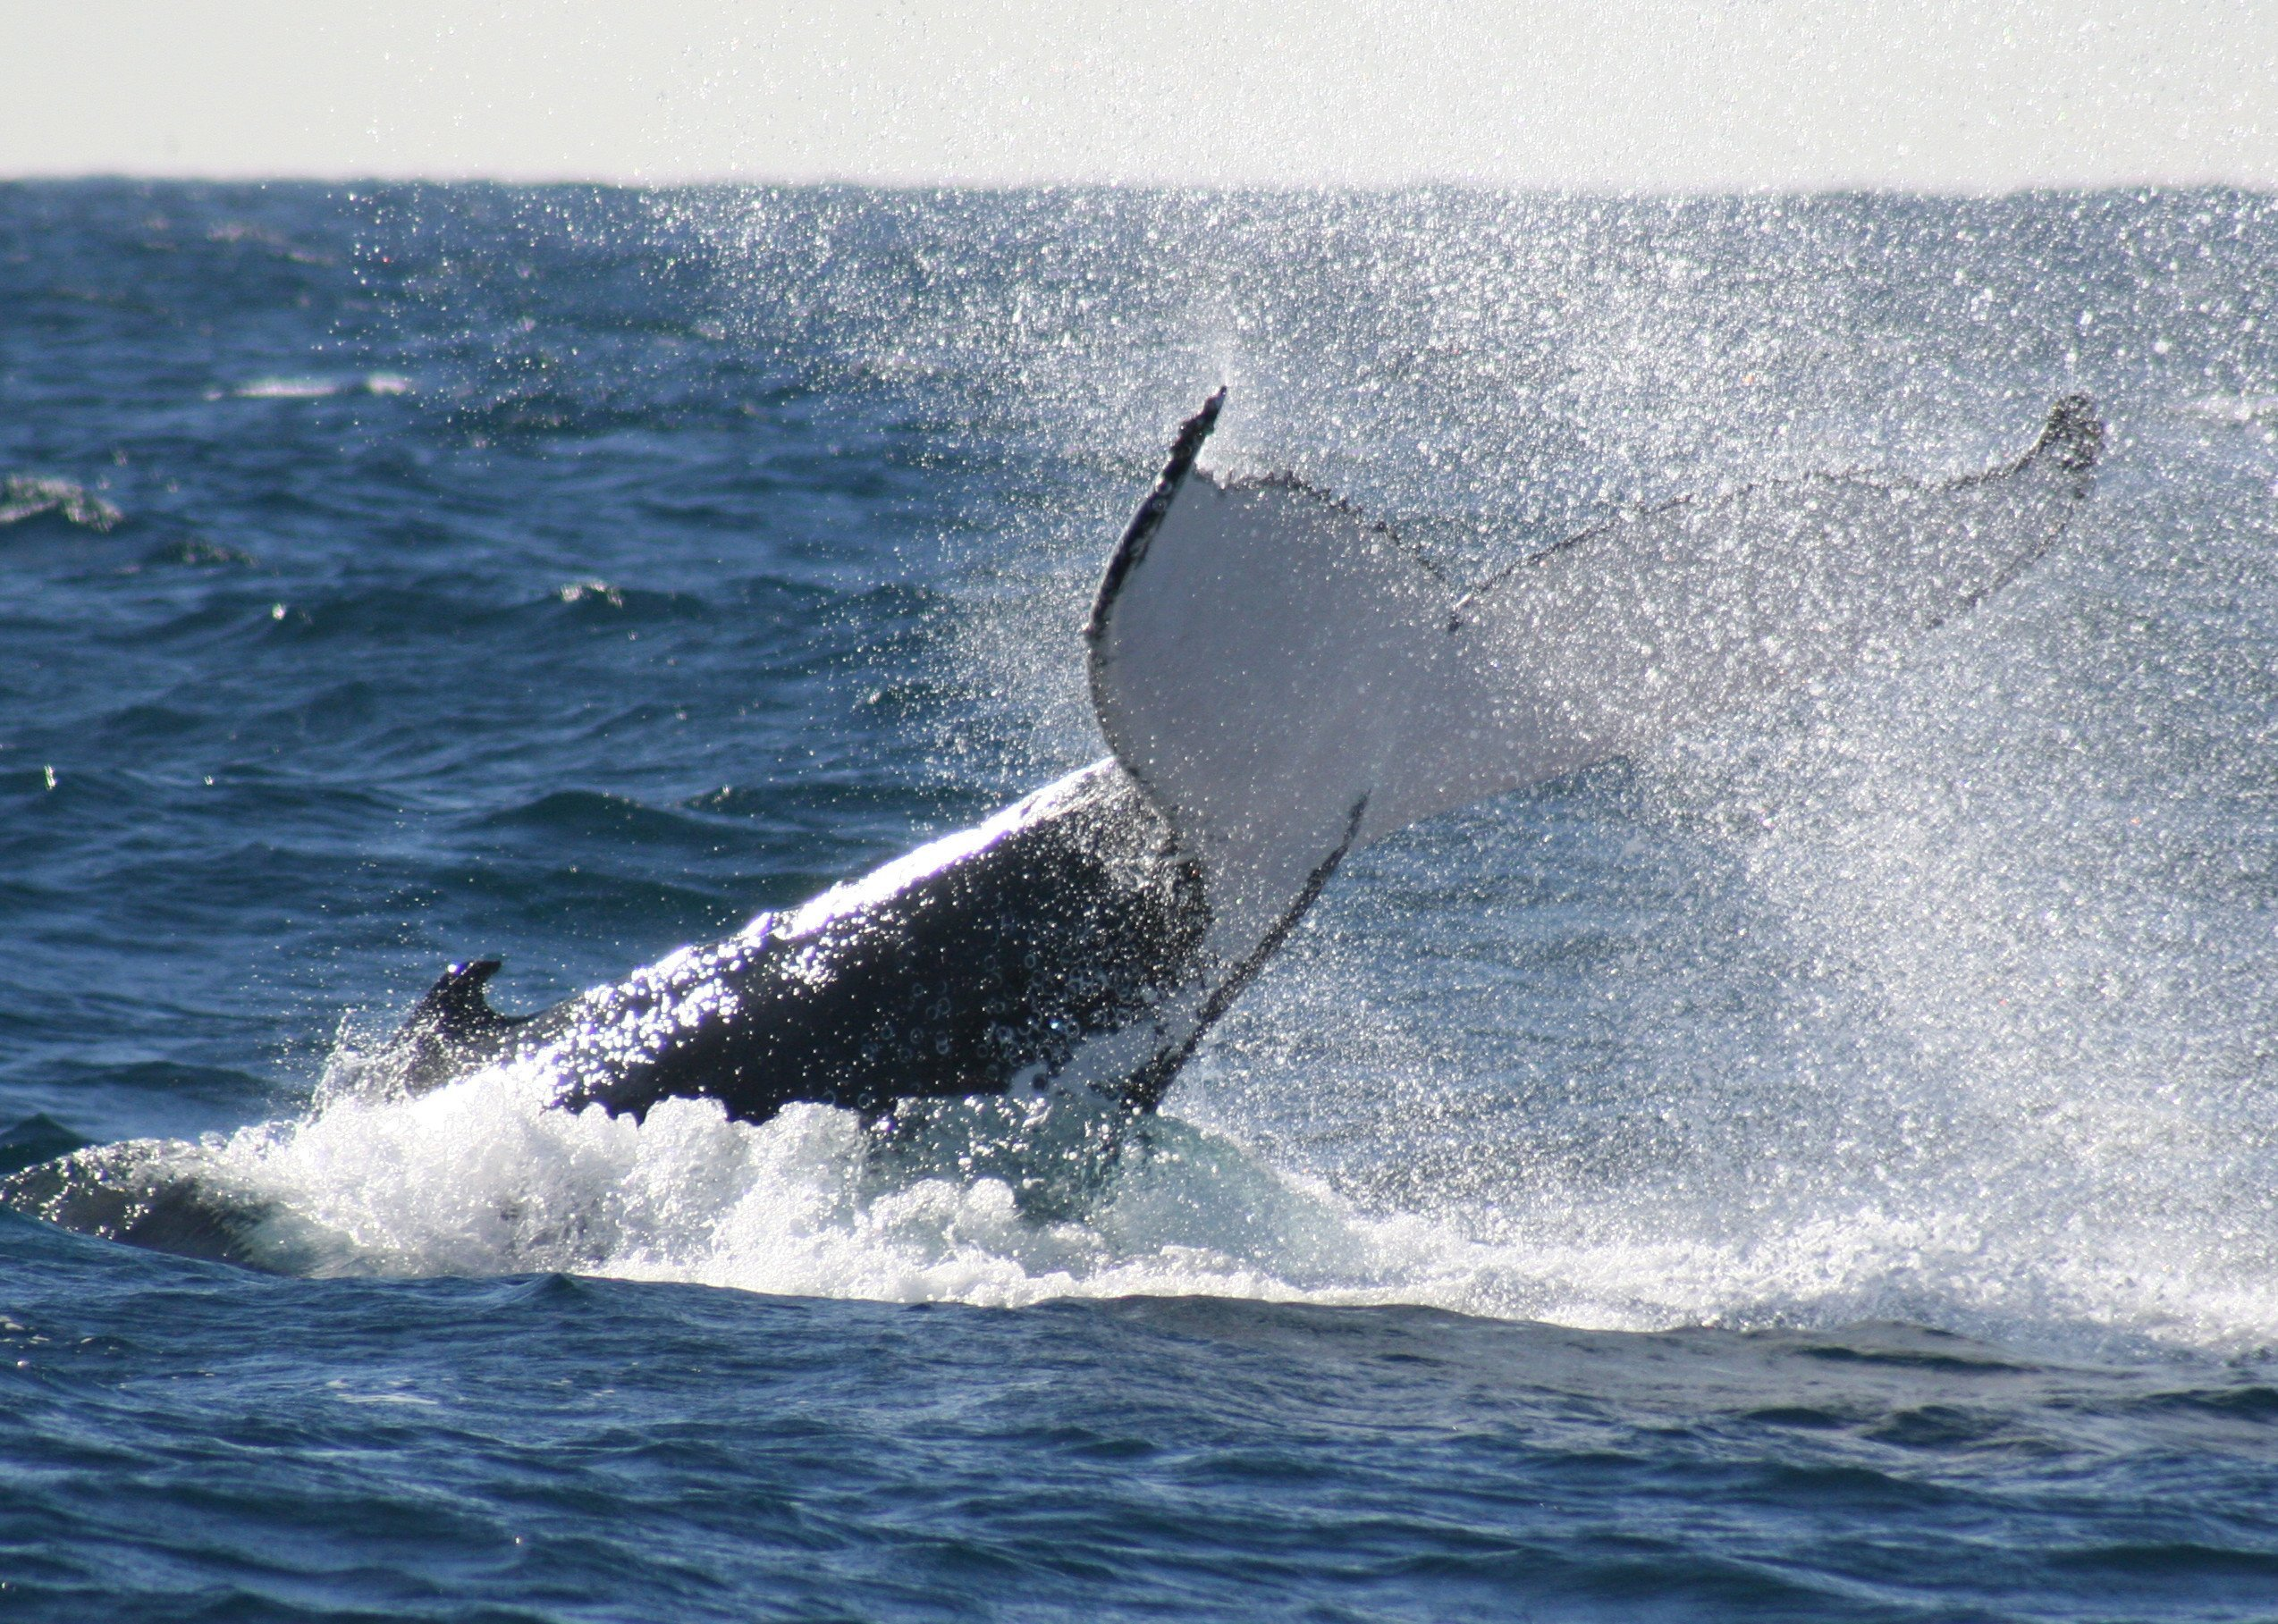 View of a whale in Sydney waters